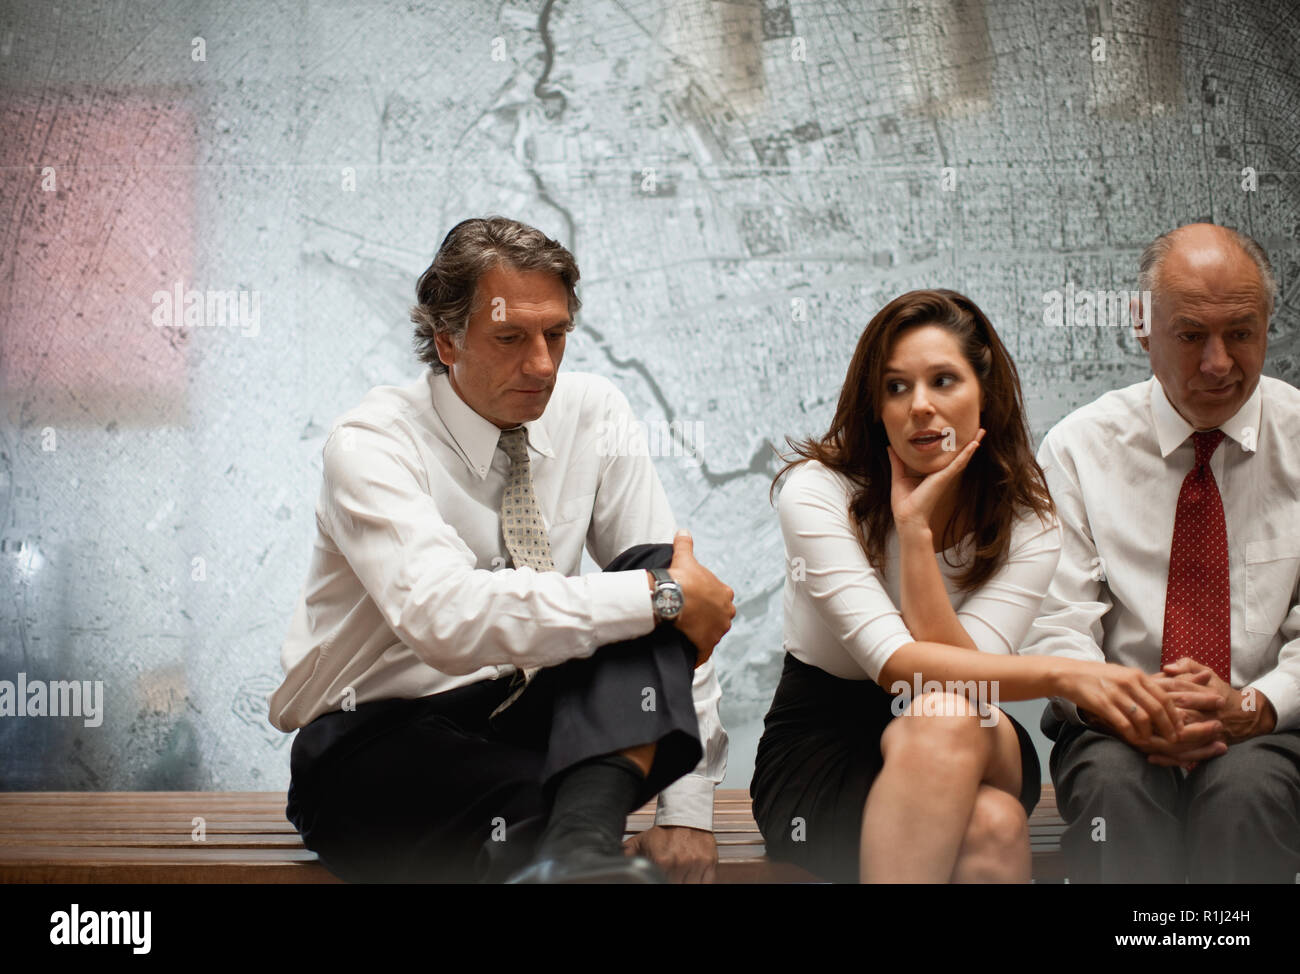 Group of architects at a meeting,  looking worried. - Stock Image